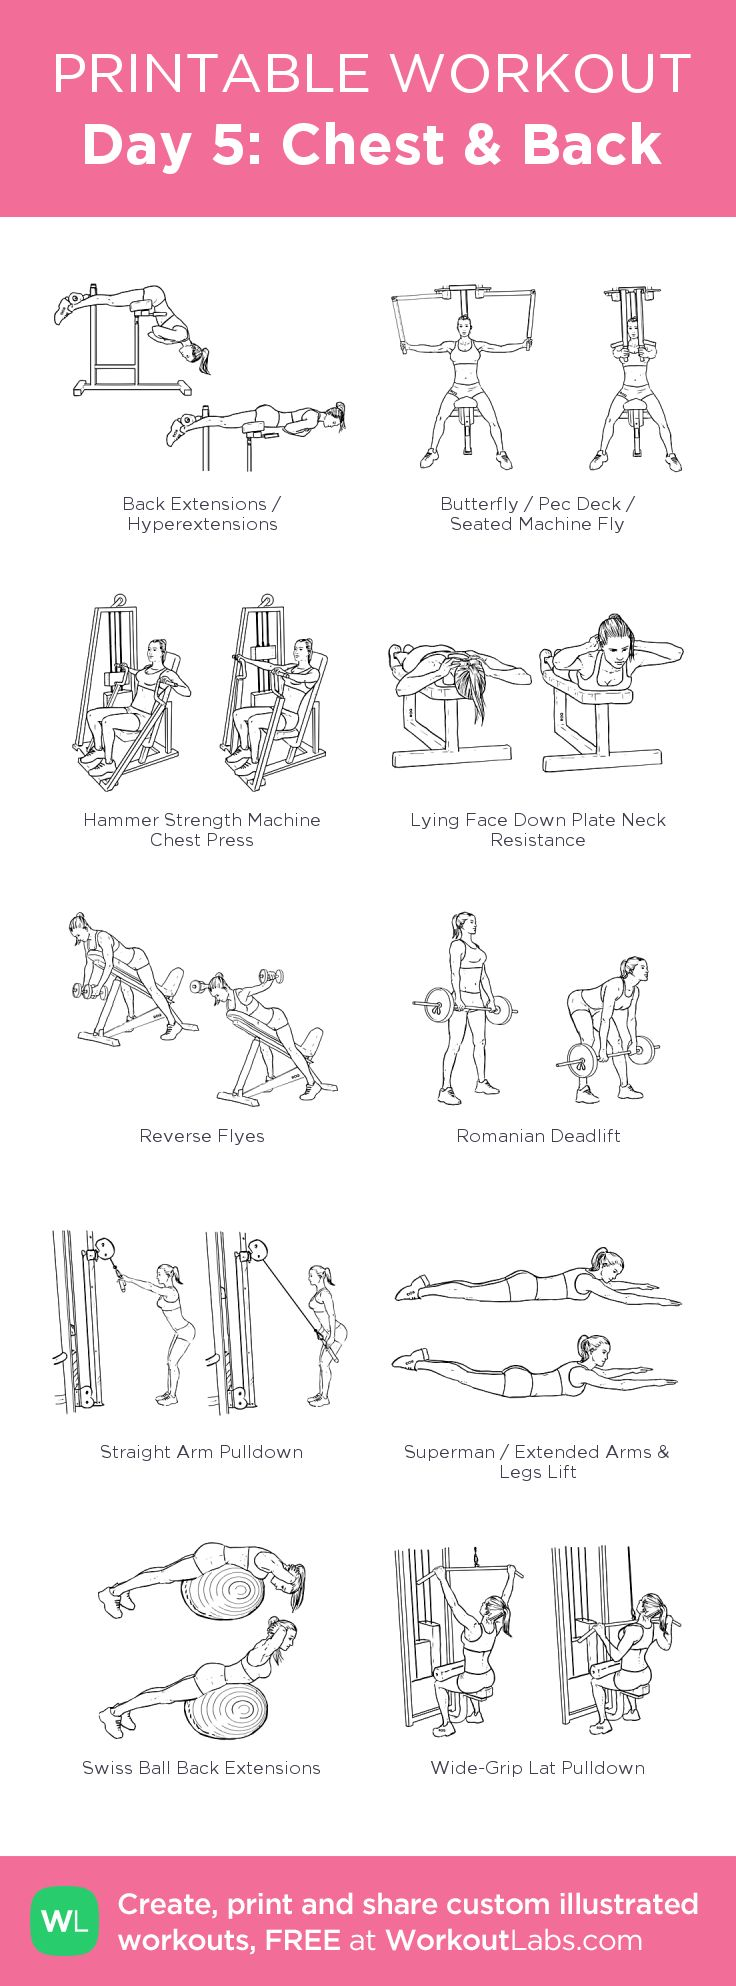 Day 5: Chest & Back - my visual workout created at WorkoutLabs.com • Click through to customize and download as a FREE PDF! #customworkout